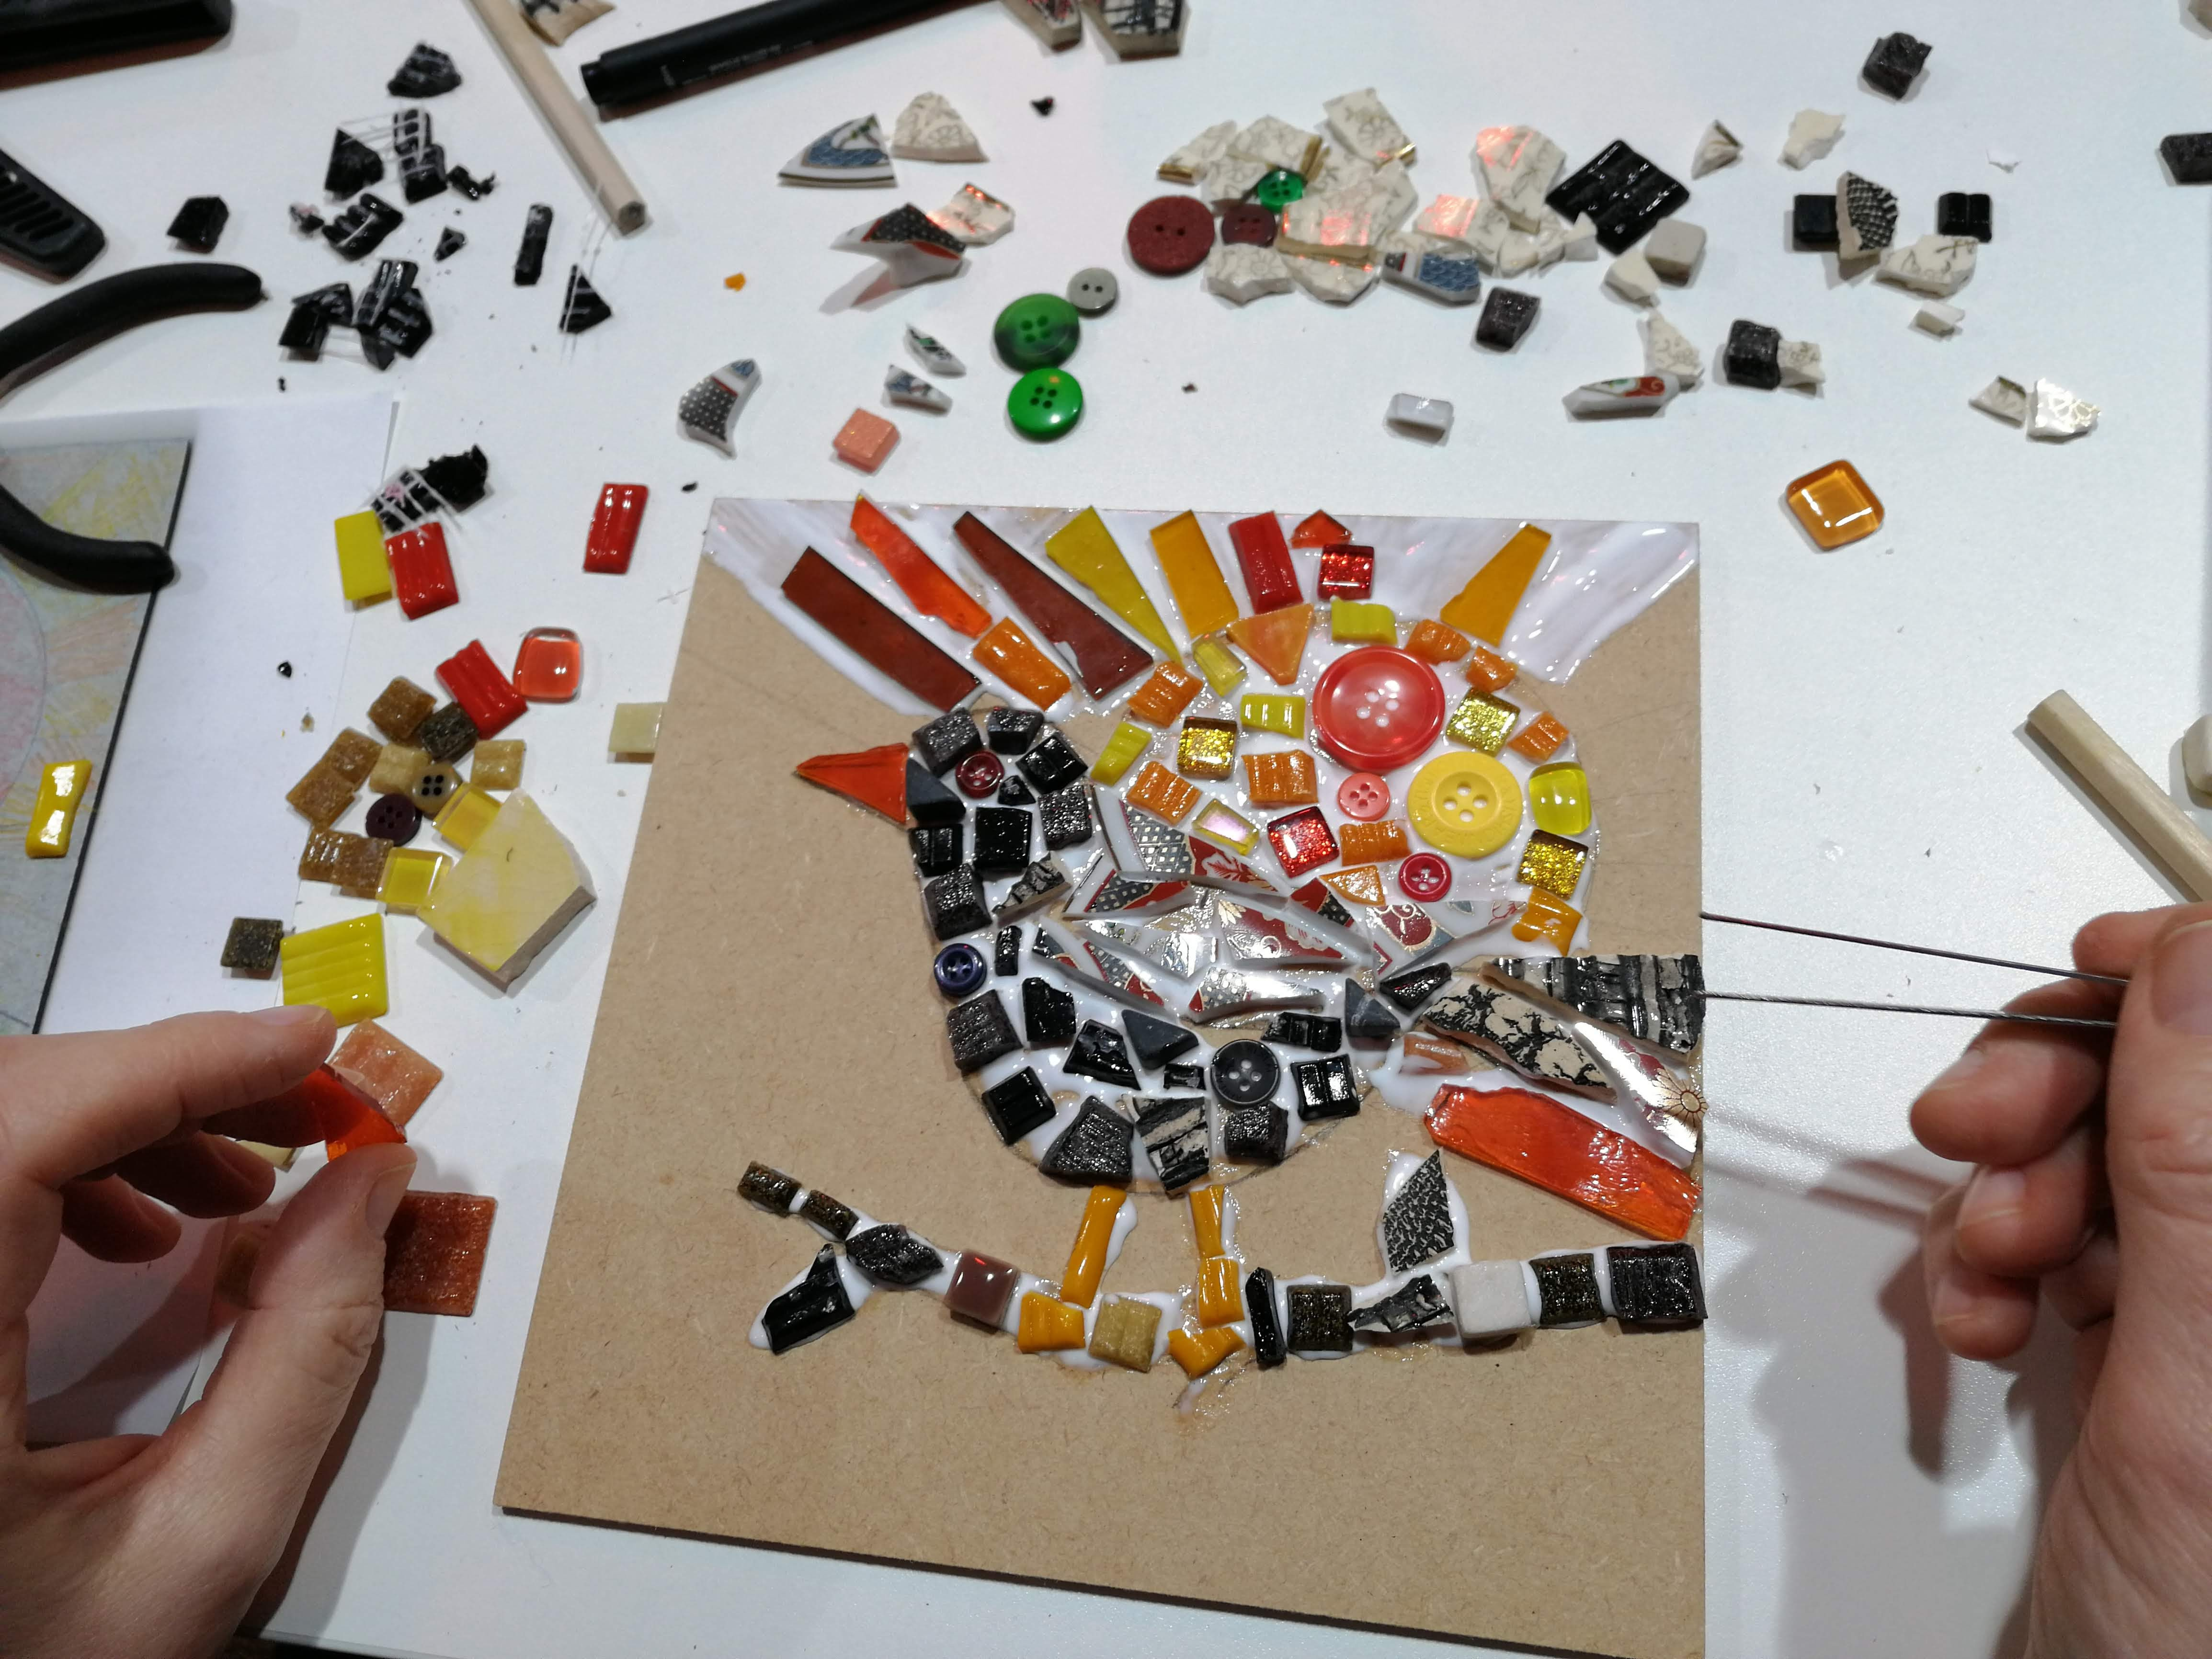 Creative Mosaic Workshop - EJR